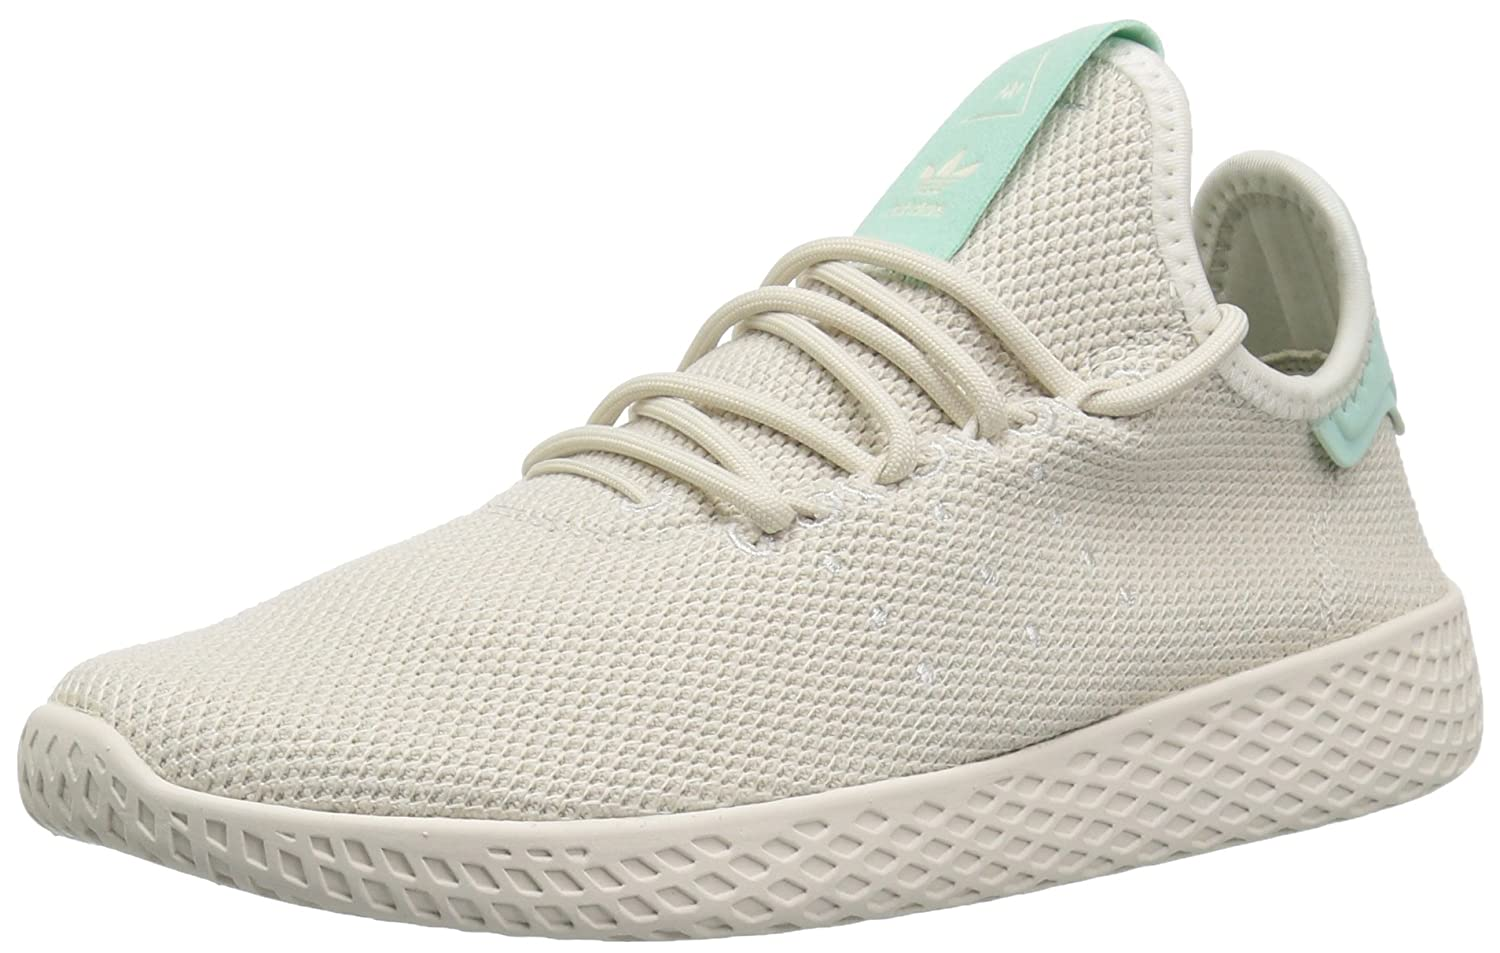 adidas Originals Women's Pw Hu Tennis Shoe B077XFKWF4 9 B(M) US|Talc/Talc/Chalk White